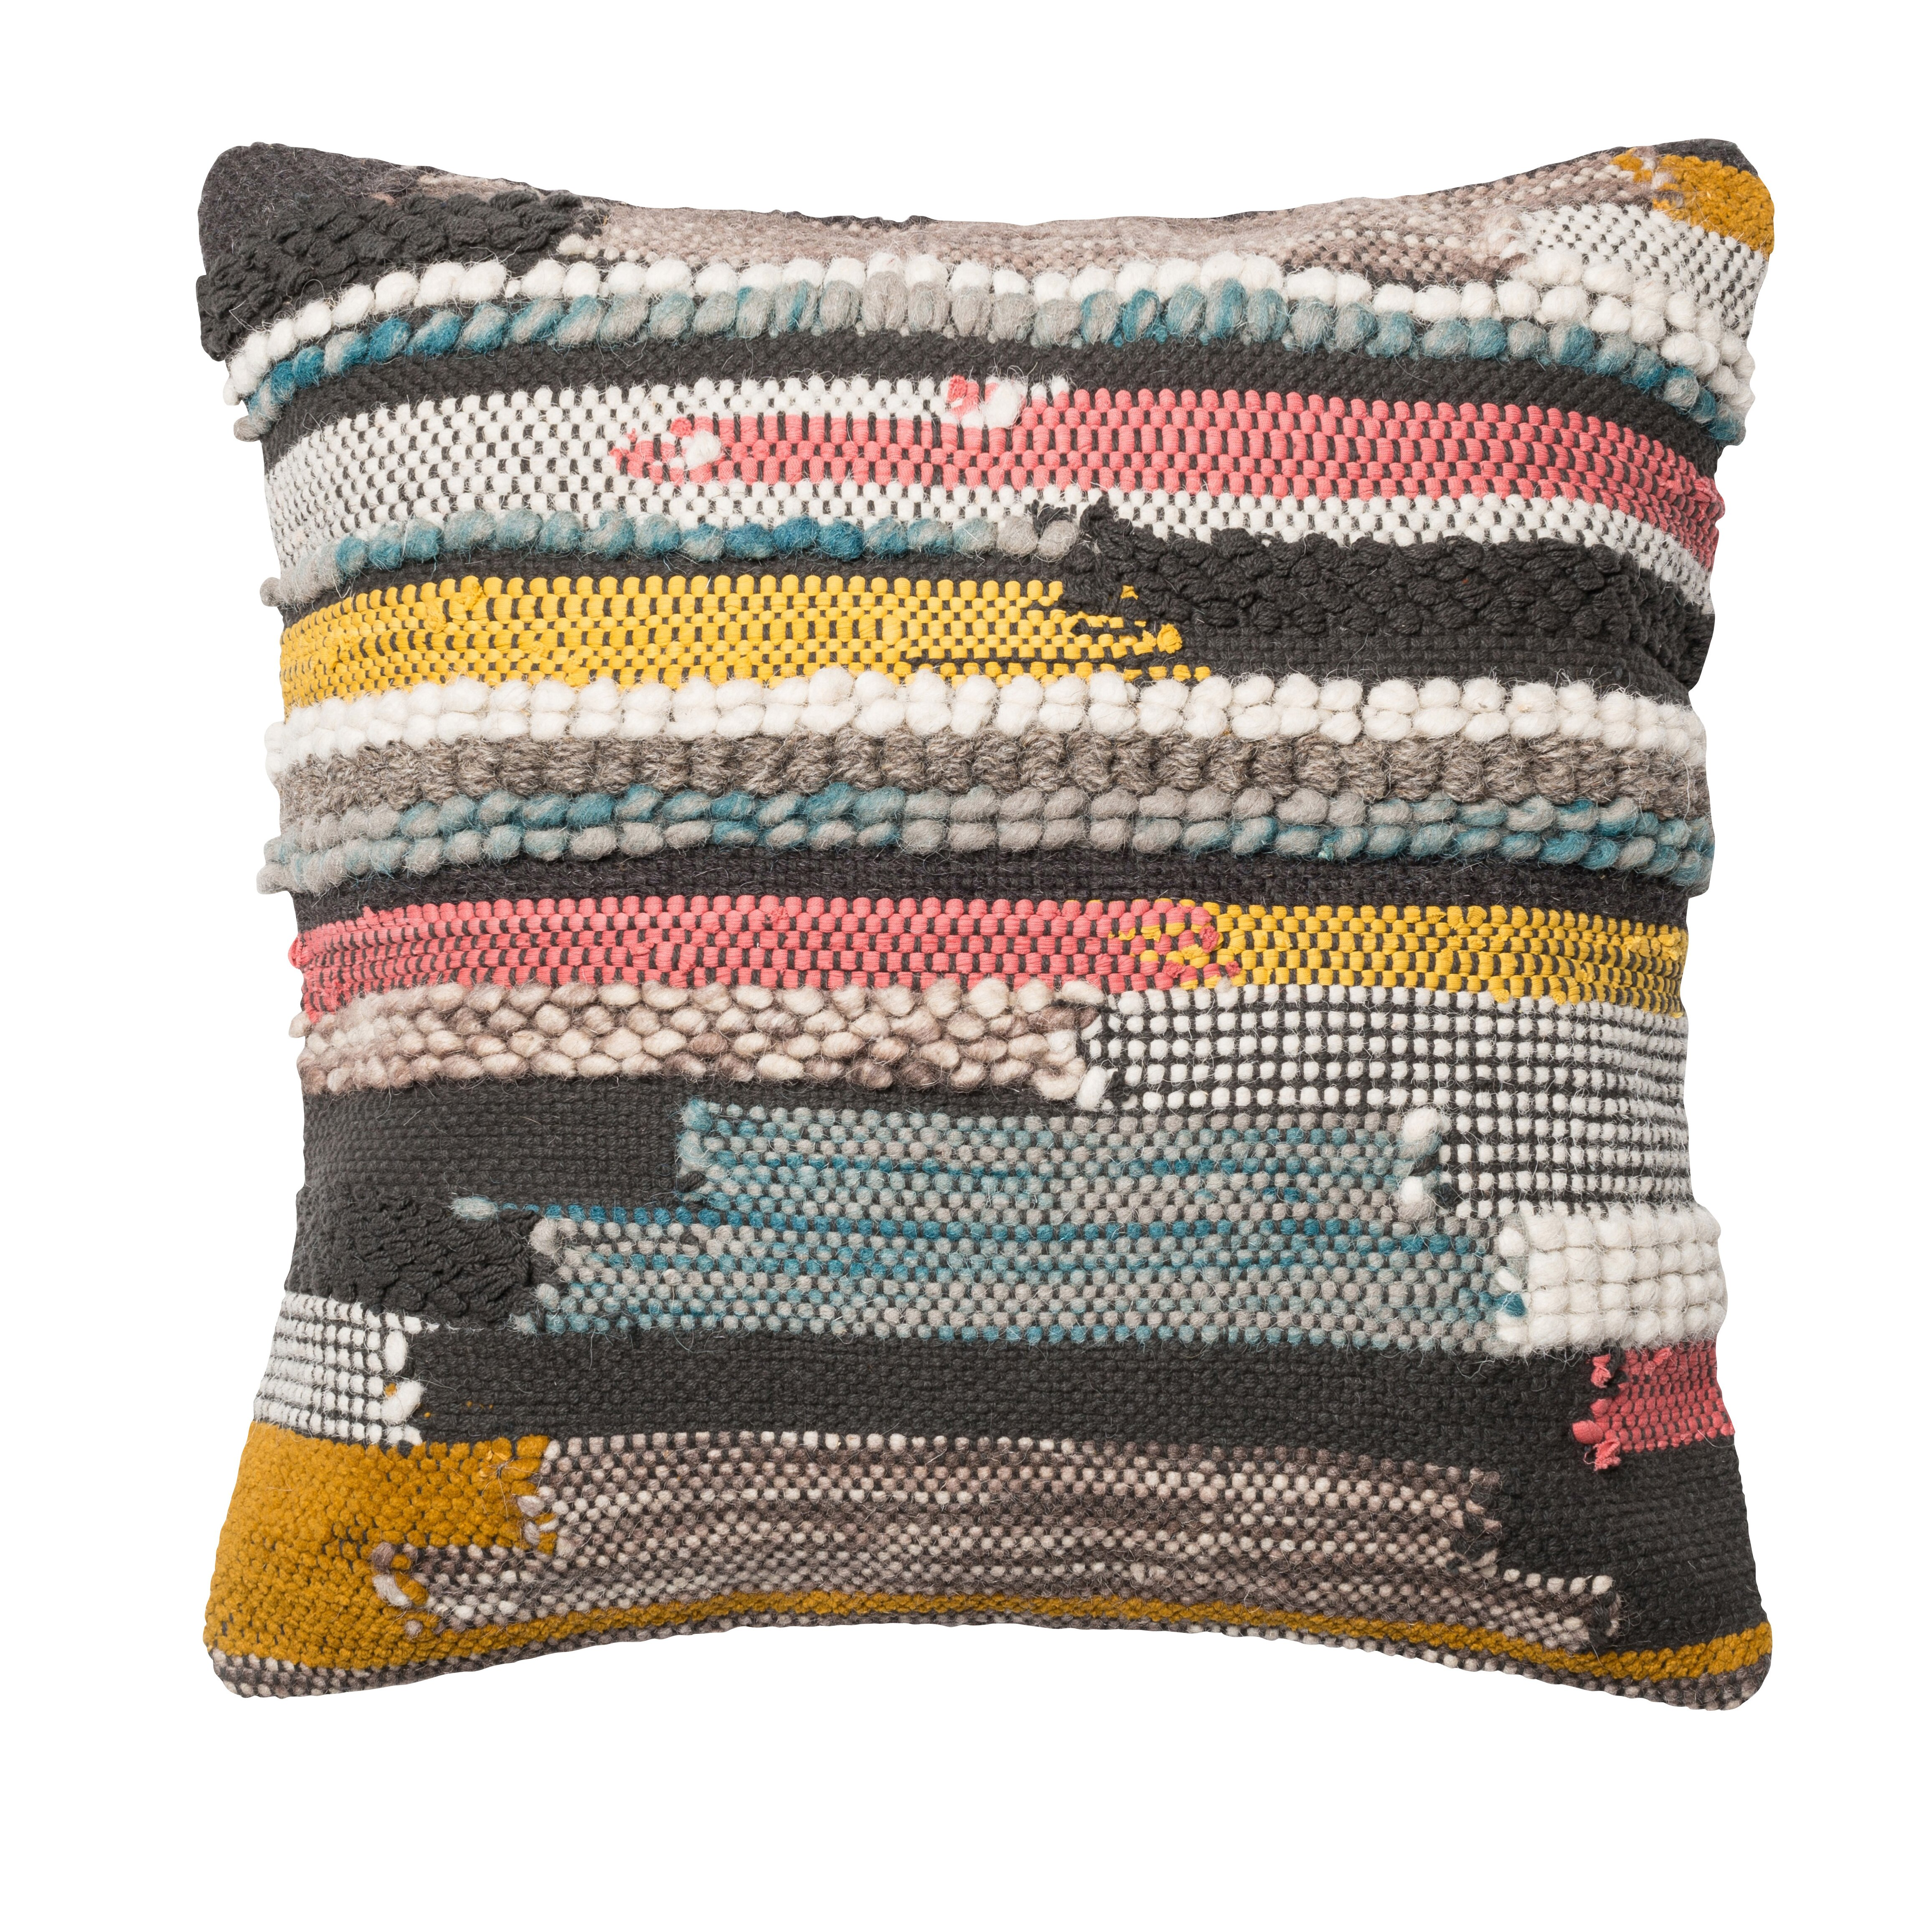 Throw Pillows Textured : Loloi Rugs Textured Cotton Throw Pillow & Reviews Wayfair